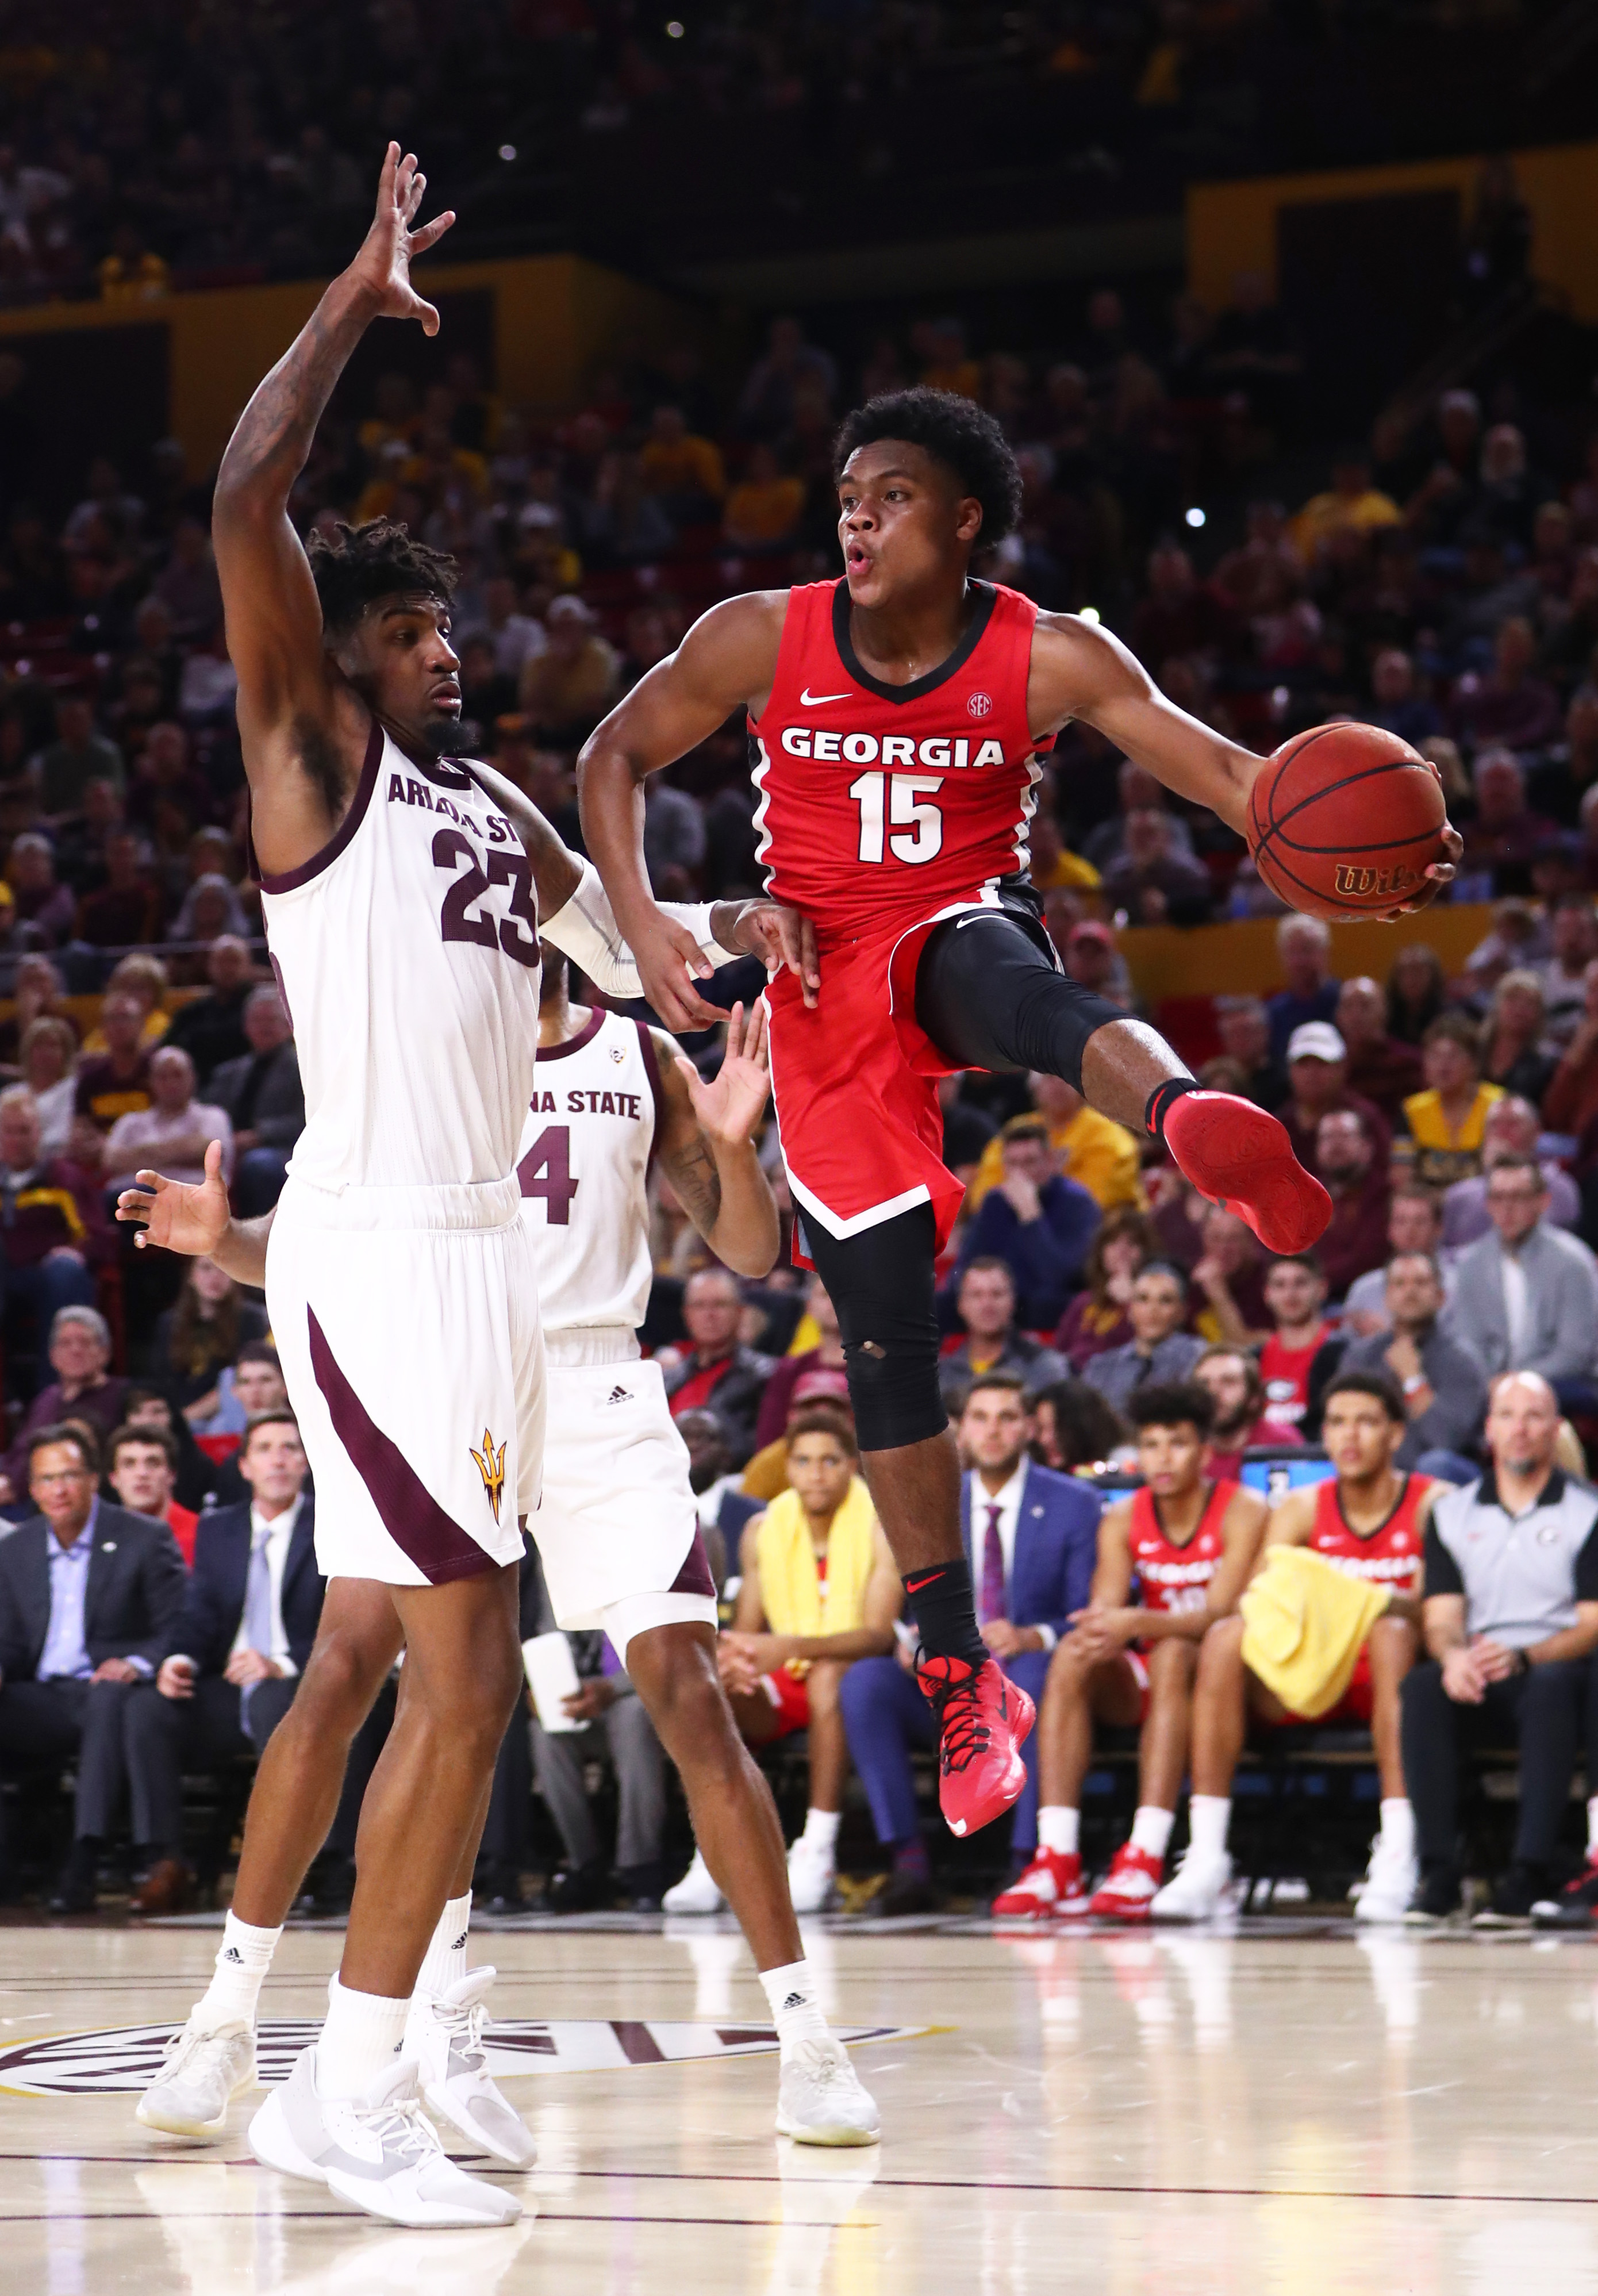 NCAA Basketball: Georgia at Arizona State